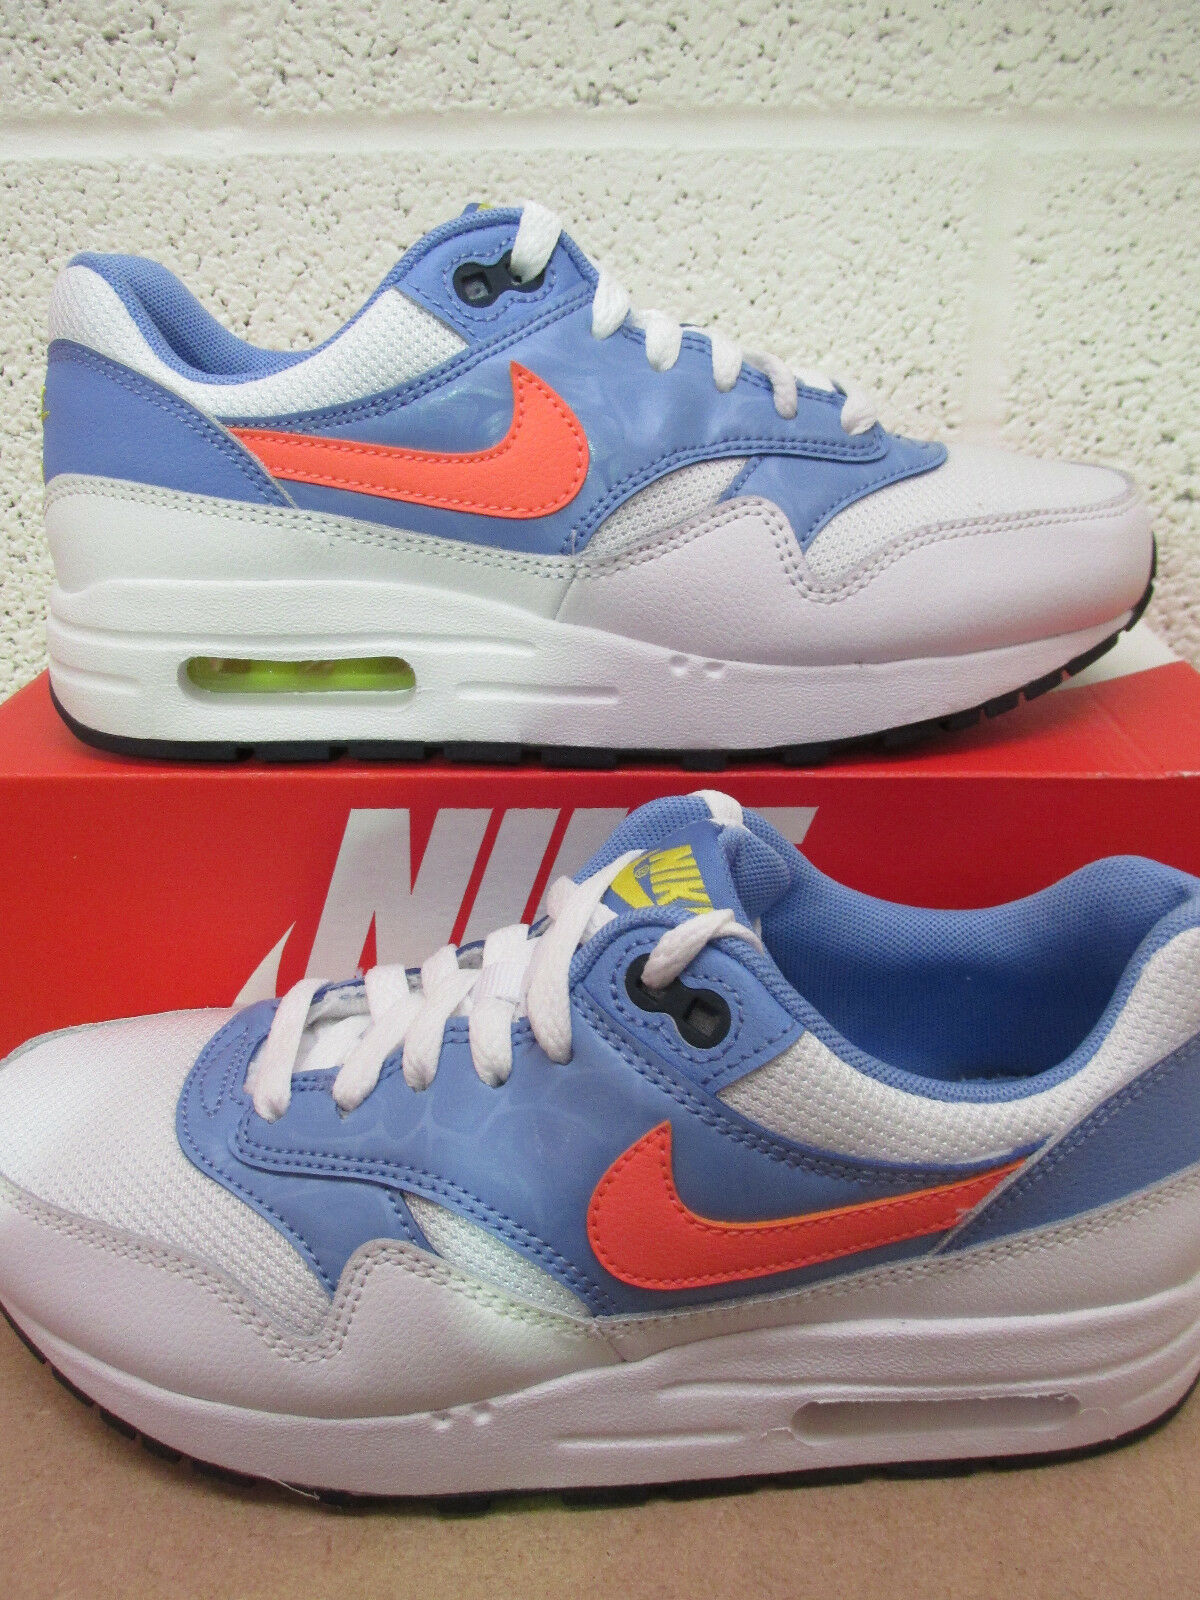 Nike Air Max 1 gris Baskets Basket Course 807605 101 Baskets gris 7c21ce